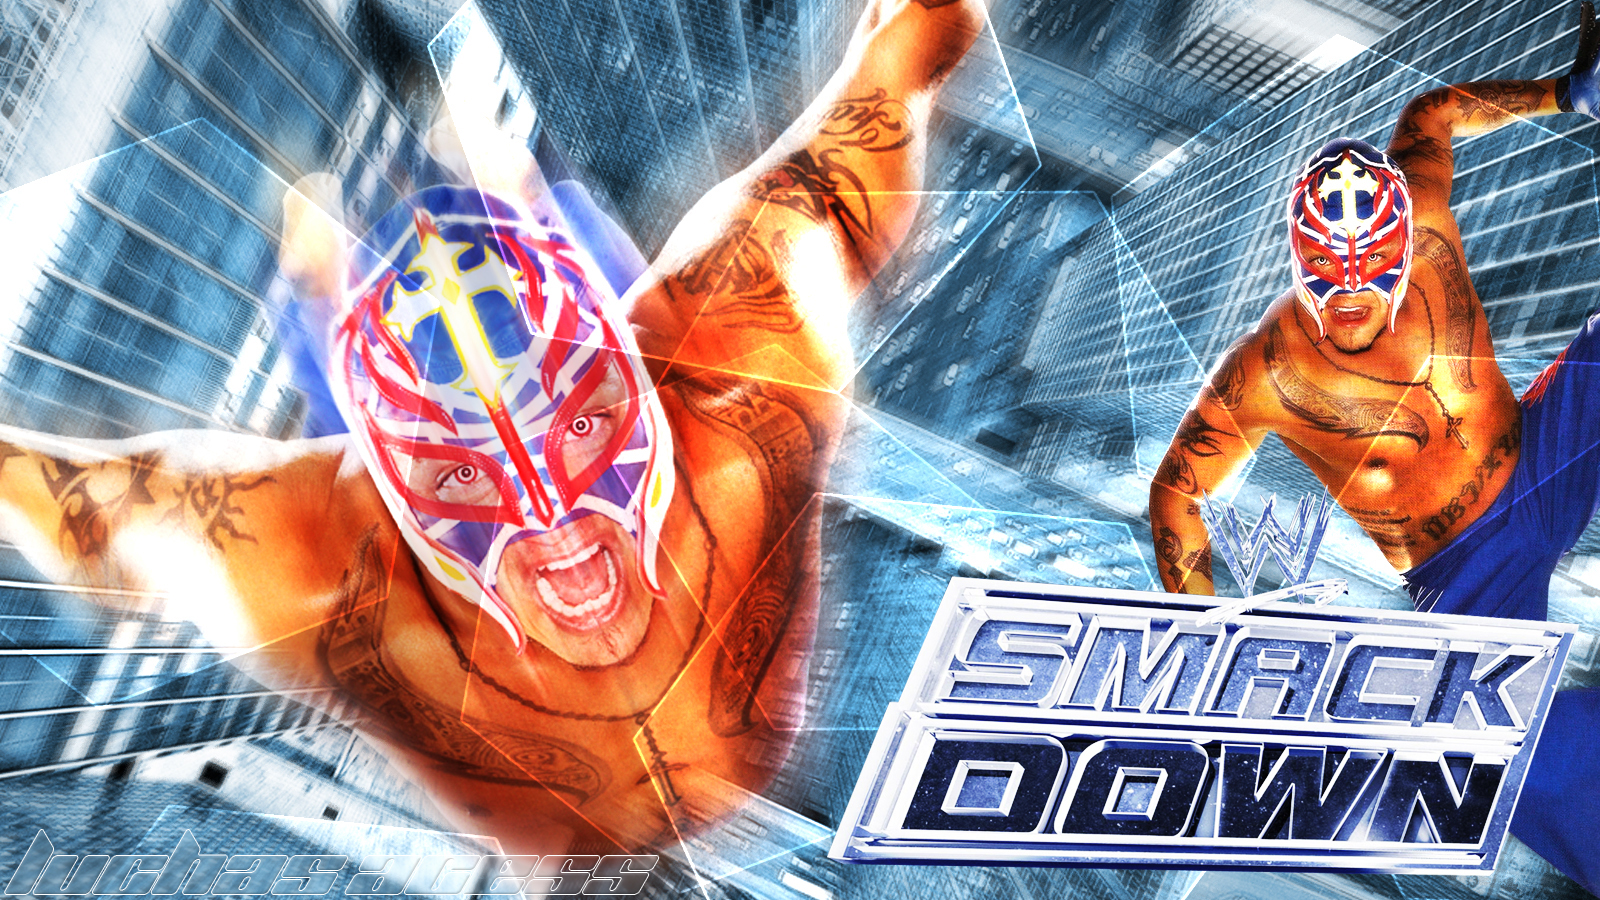 http://1.bp.blogspot.com/-qPGLvJ6h7rU/T2BWgvdzrWI/AAAAAAAABLw/UDG36--zX5o/s1600/Rey+Mysterio+in+action+hd+wallpapers.jpg